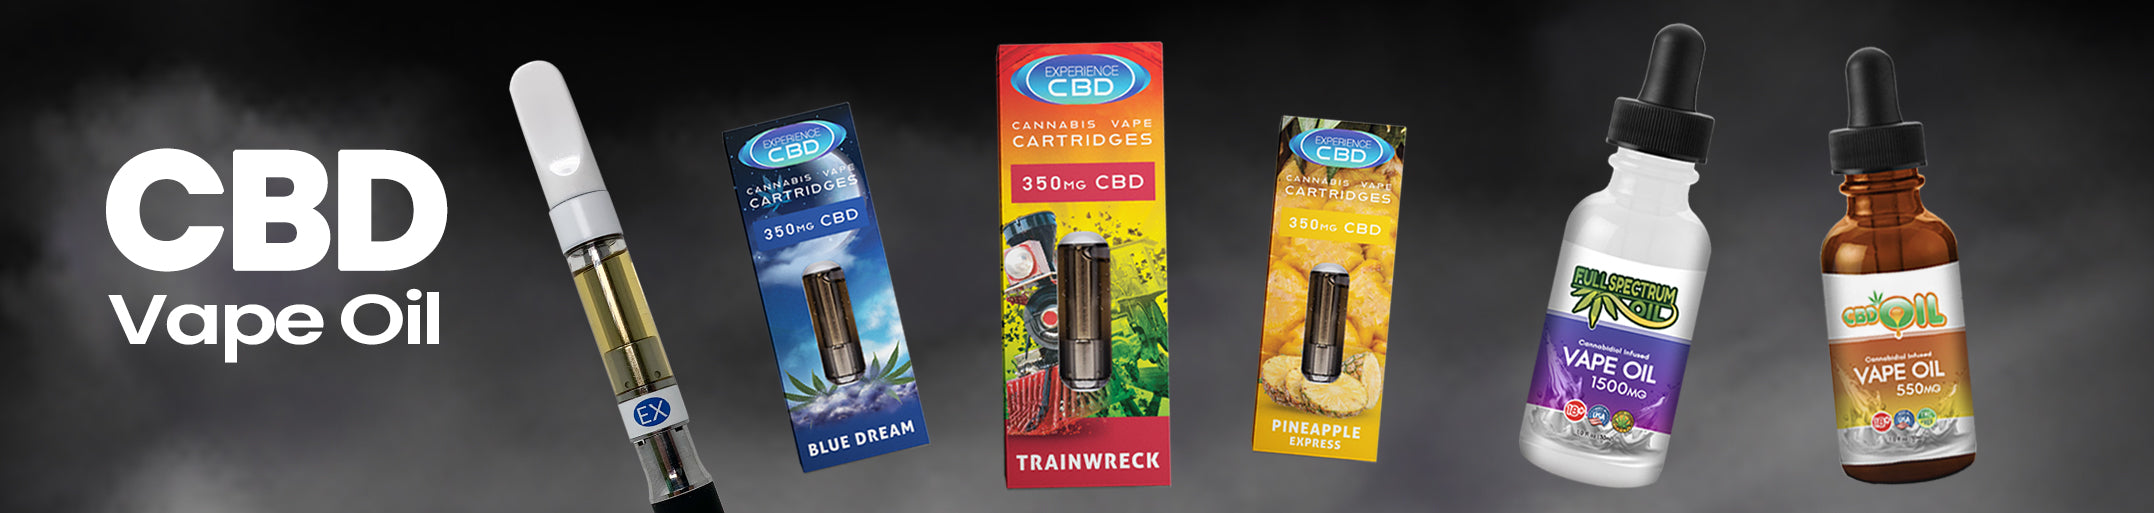 CBD Vape Oil and Vape Cartridges